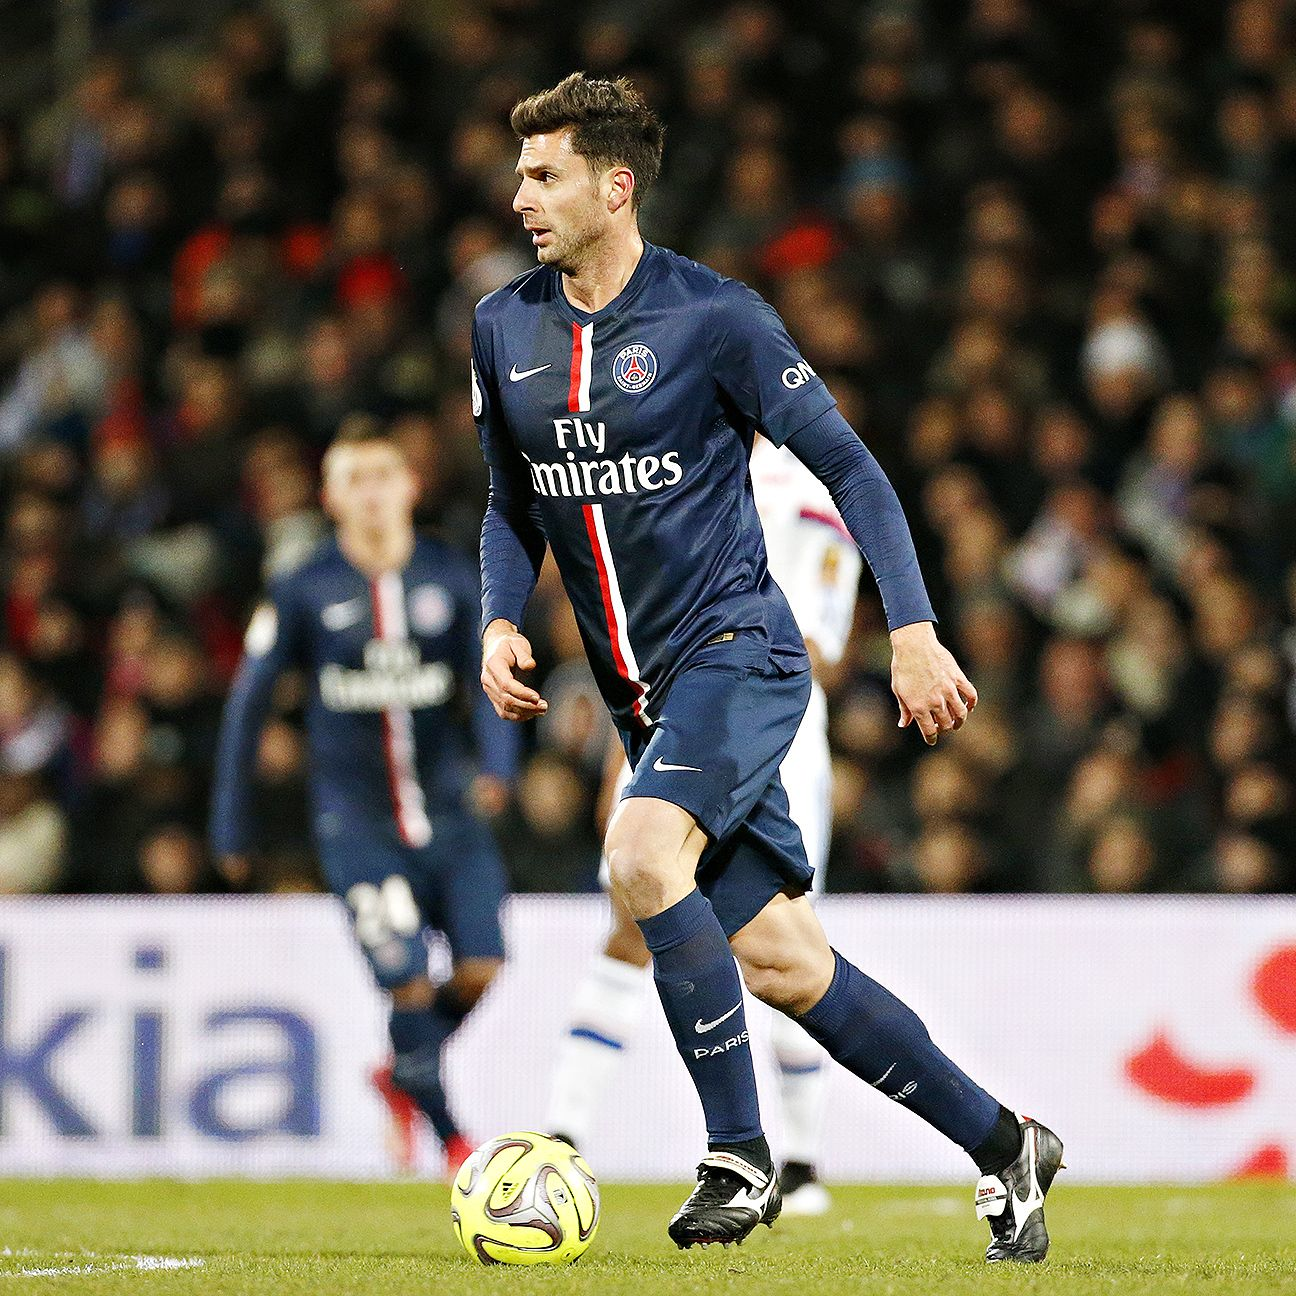 Injuries hindered Thiago Motta's progress at PSG.